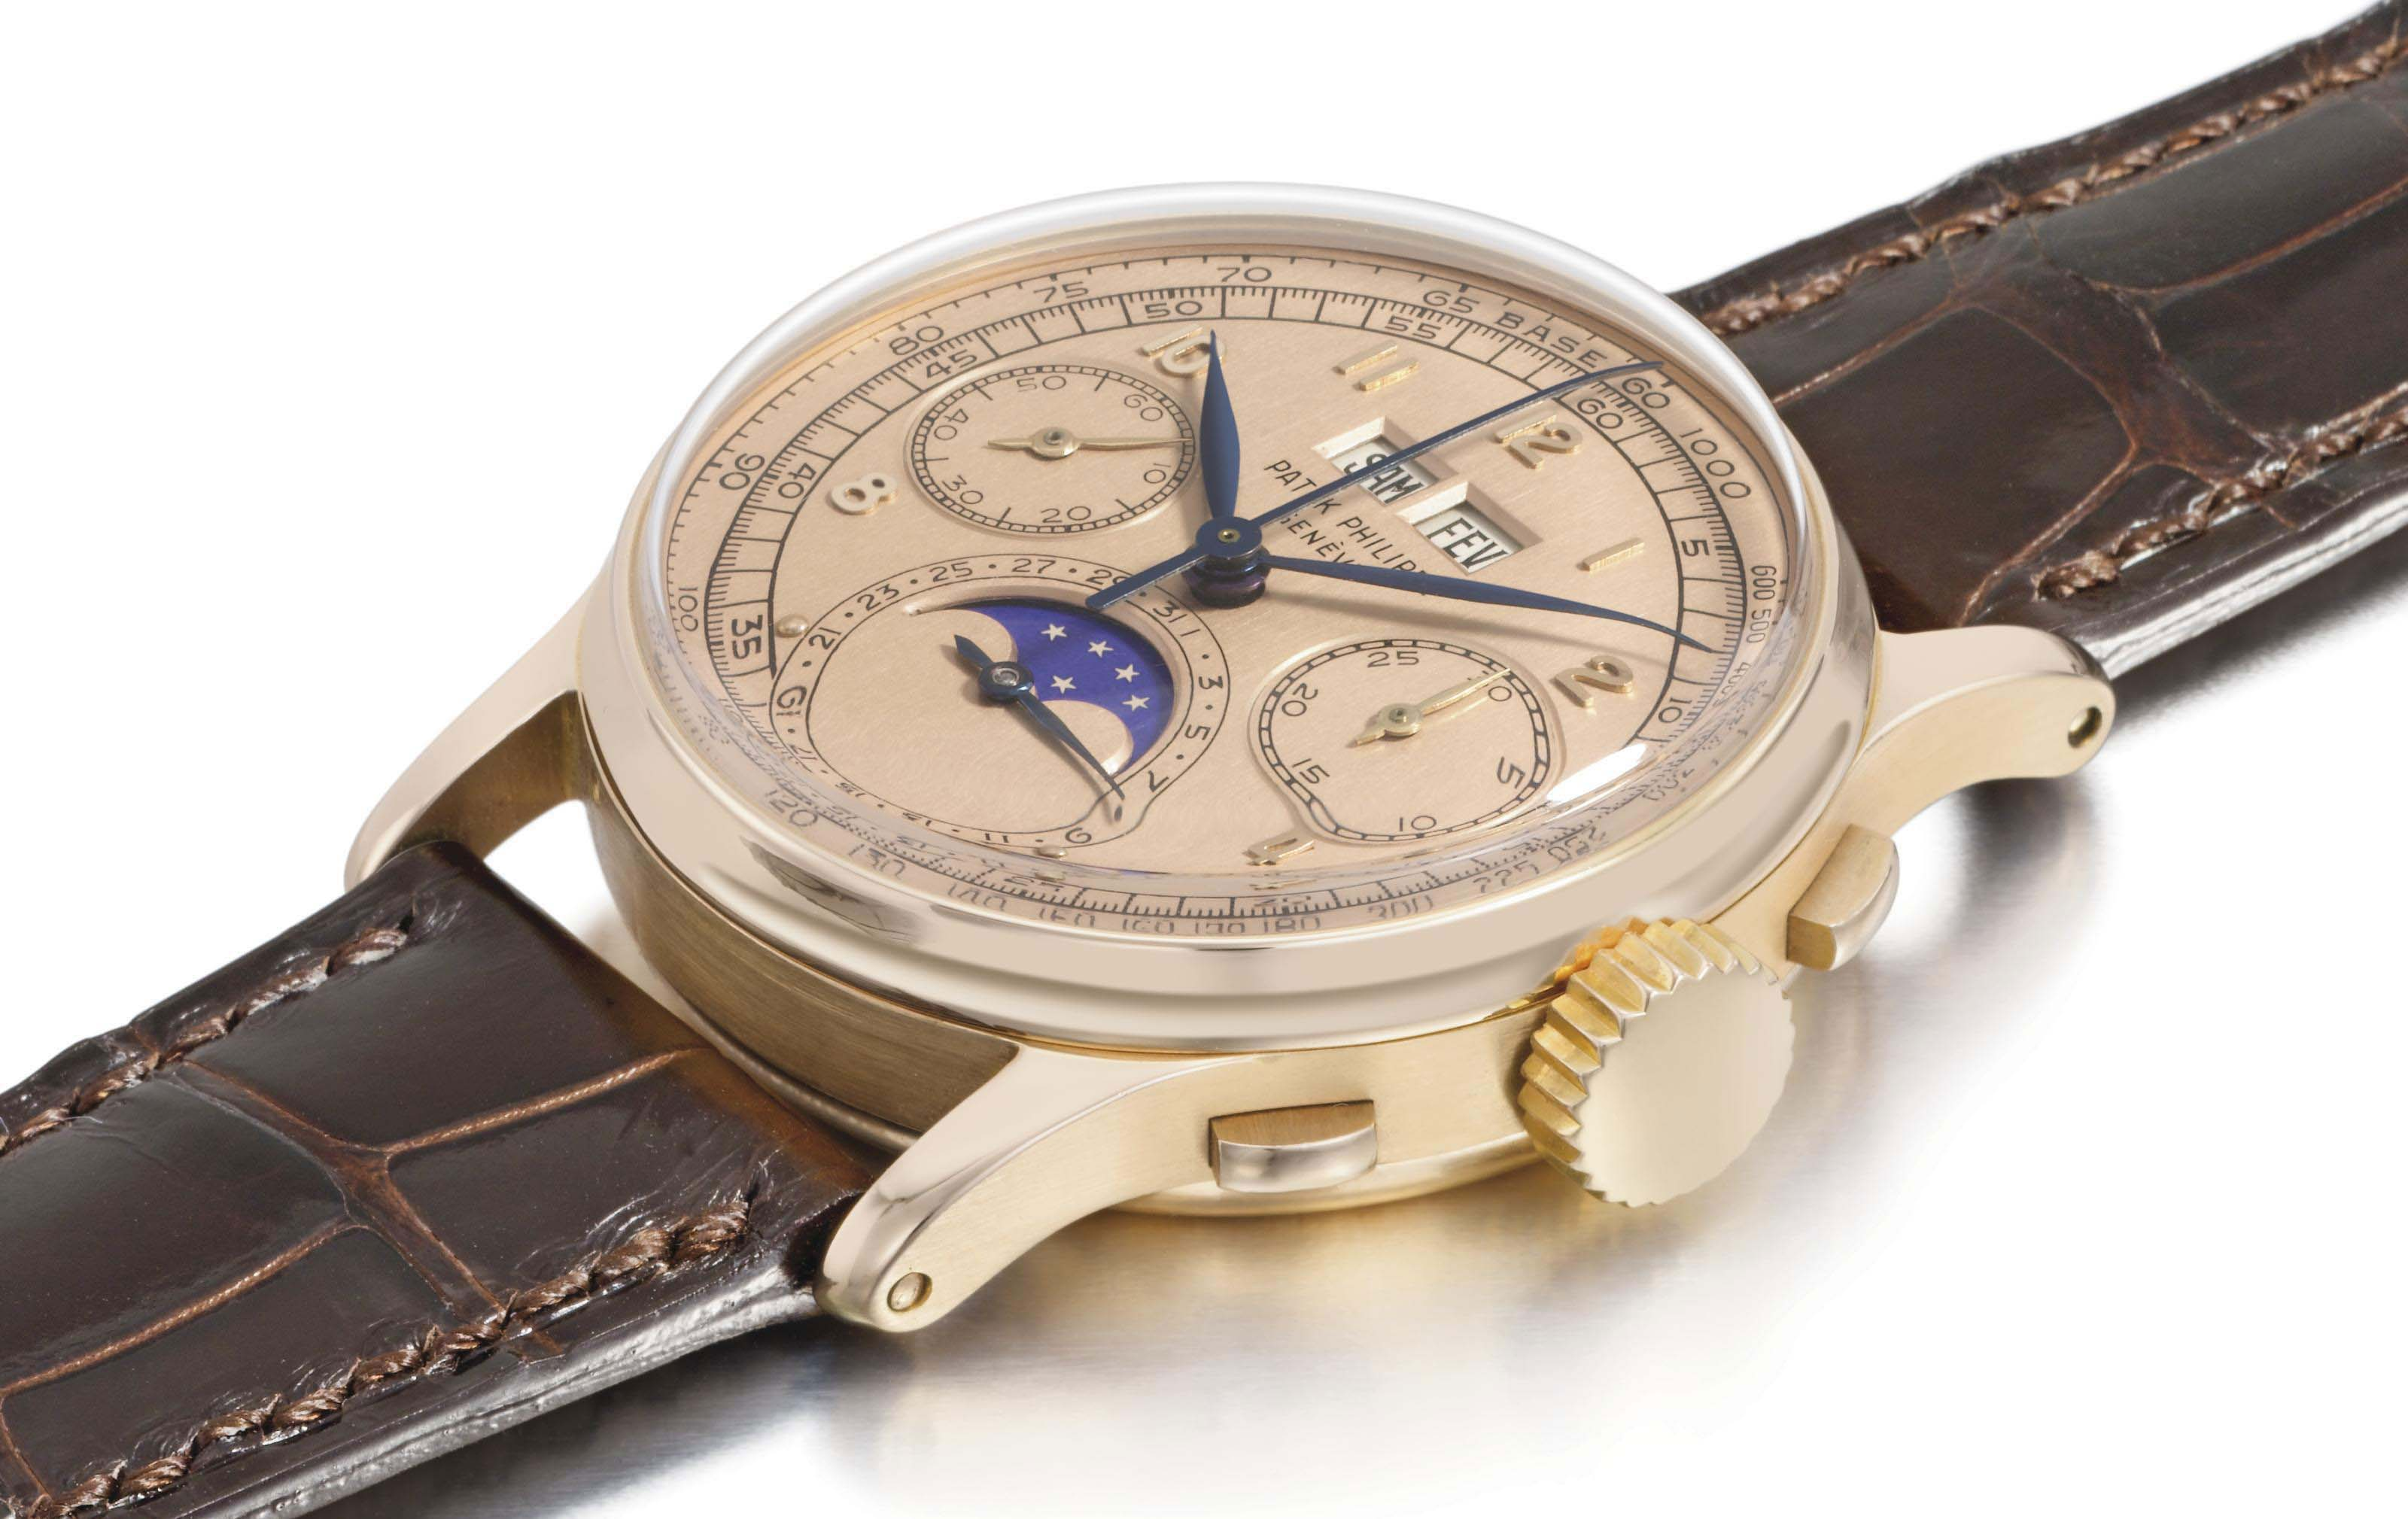 Patek Philippe. An exceptional 18K pink gold perpetual calendar chronograph wristwatch with moon phases and pink dial